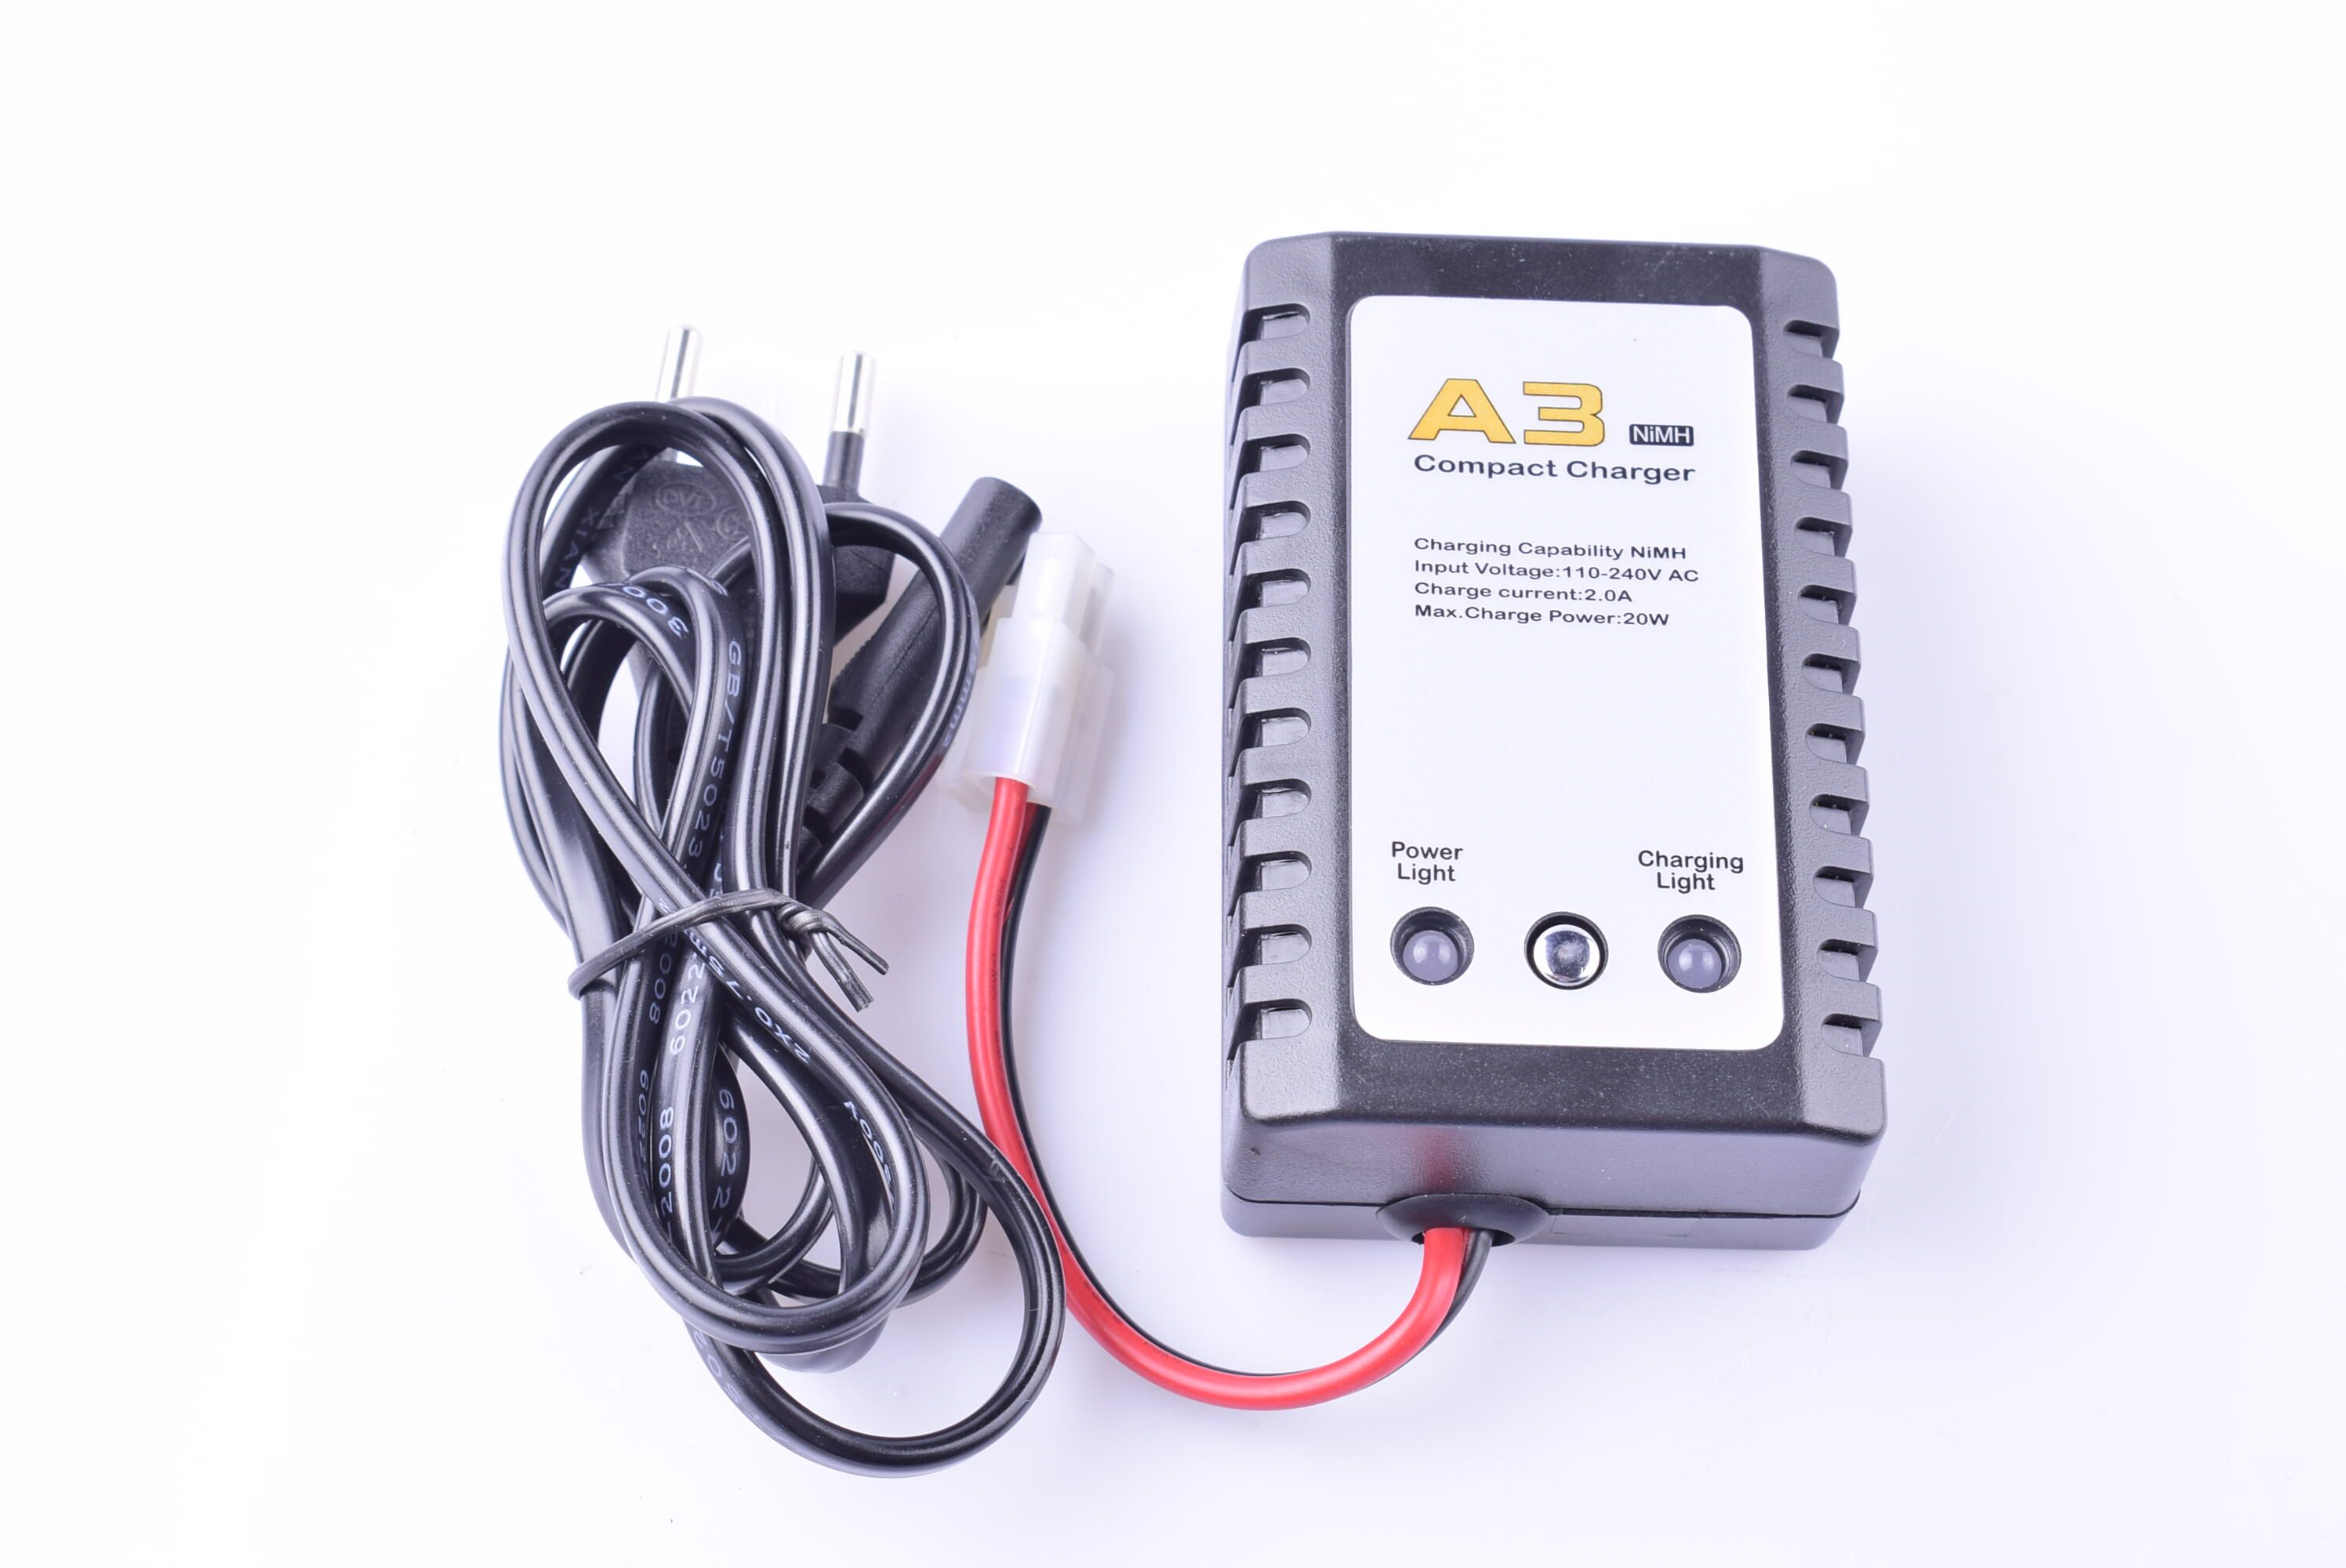 A3 AC Charger for nimh and ni-cd battery